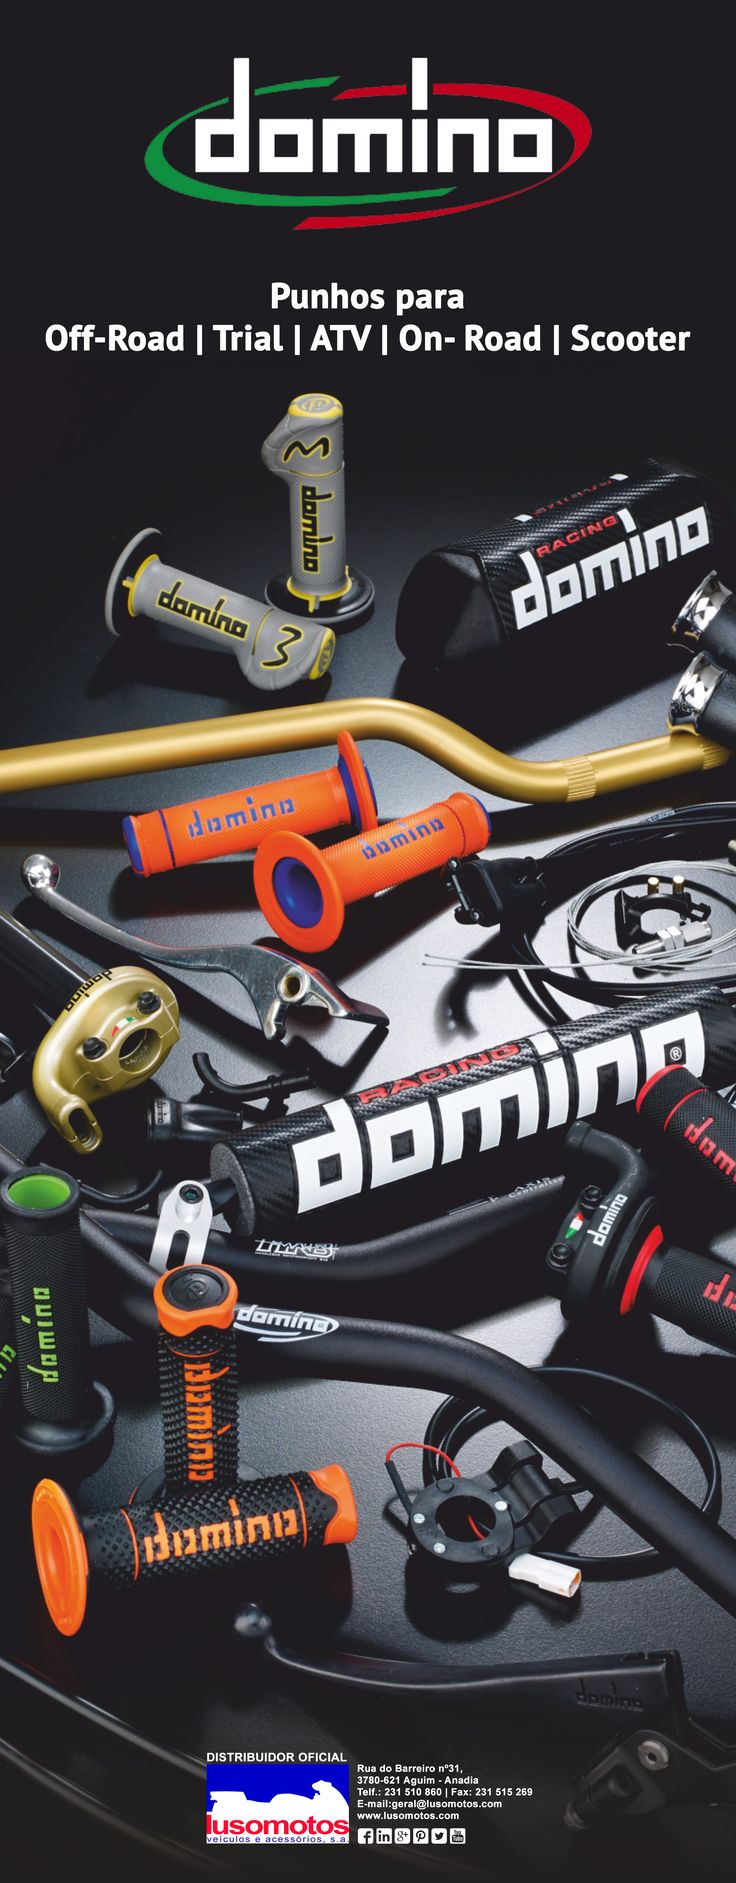 Punhos para ATV, Trial, Off-Road, On-Road e Scooter.  #domino #punhos #lusomotos